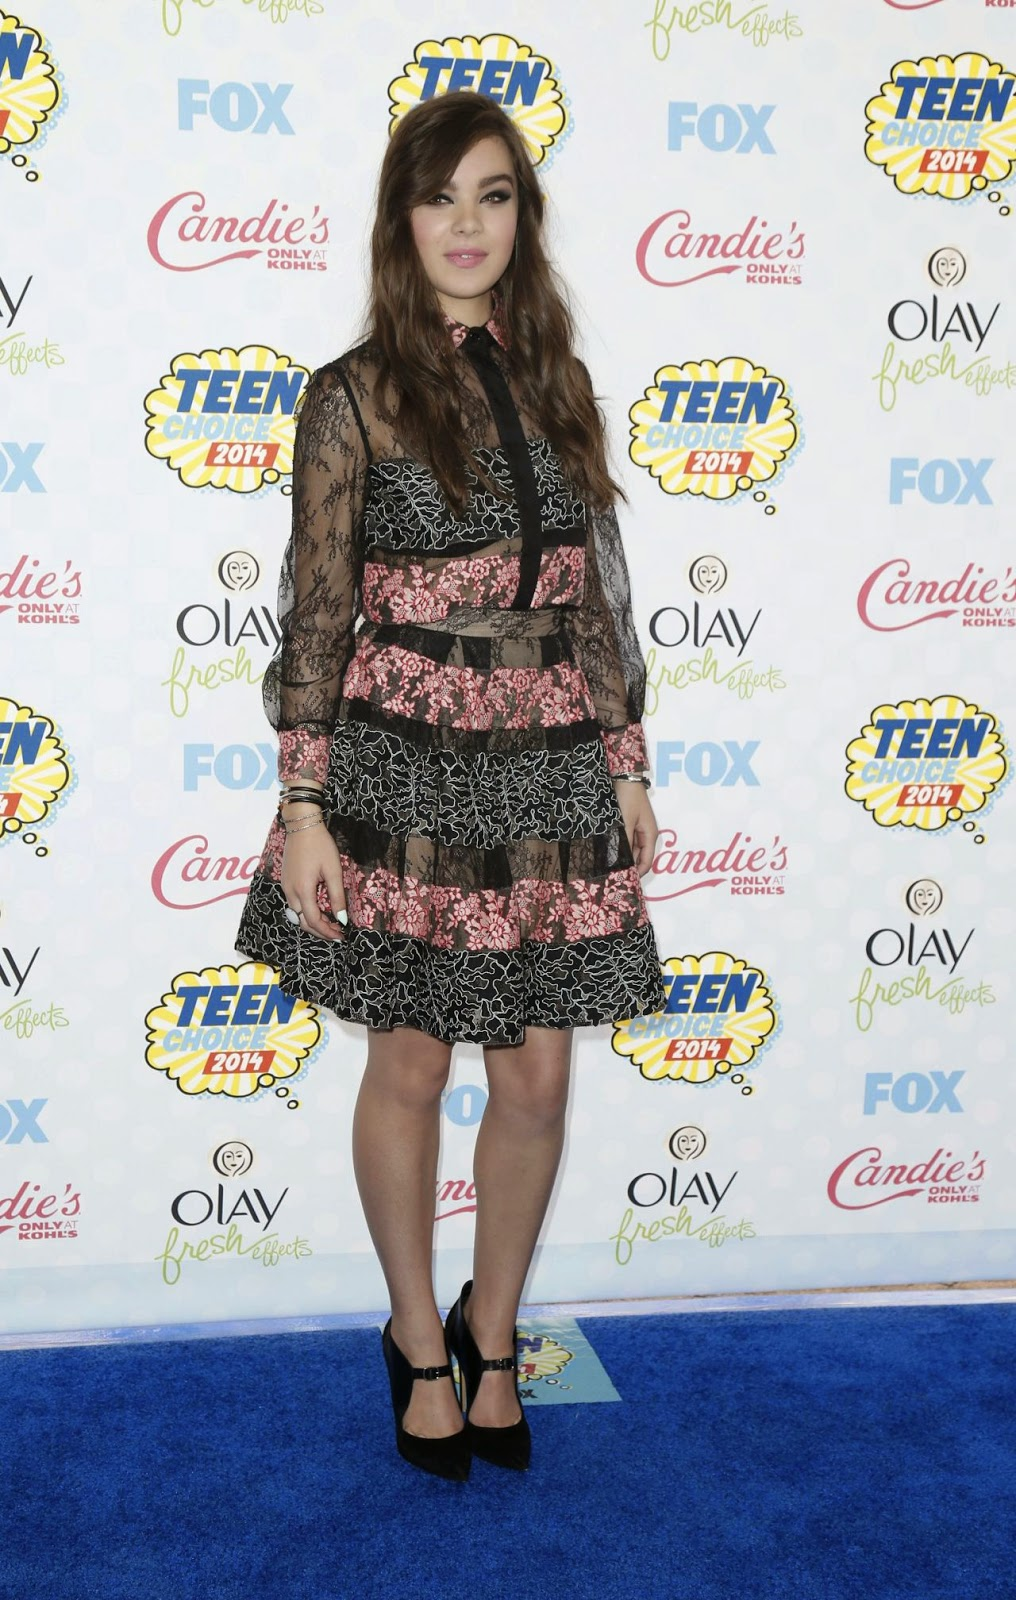 Hailee Steinfeld is chic in black and pink lace Elie Saab at the 2014 Teen Choice Awards